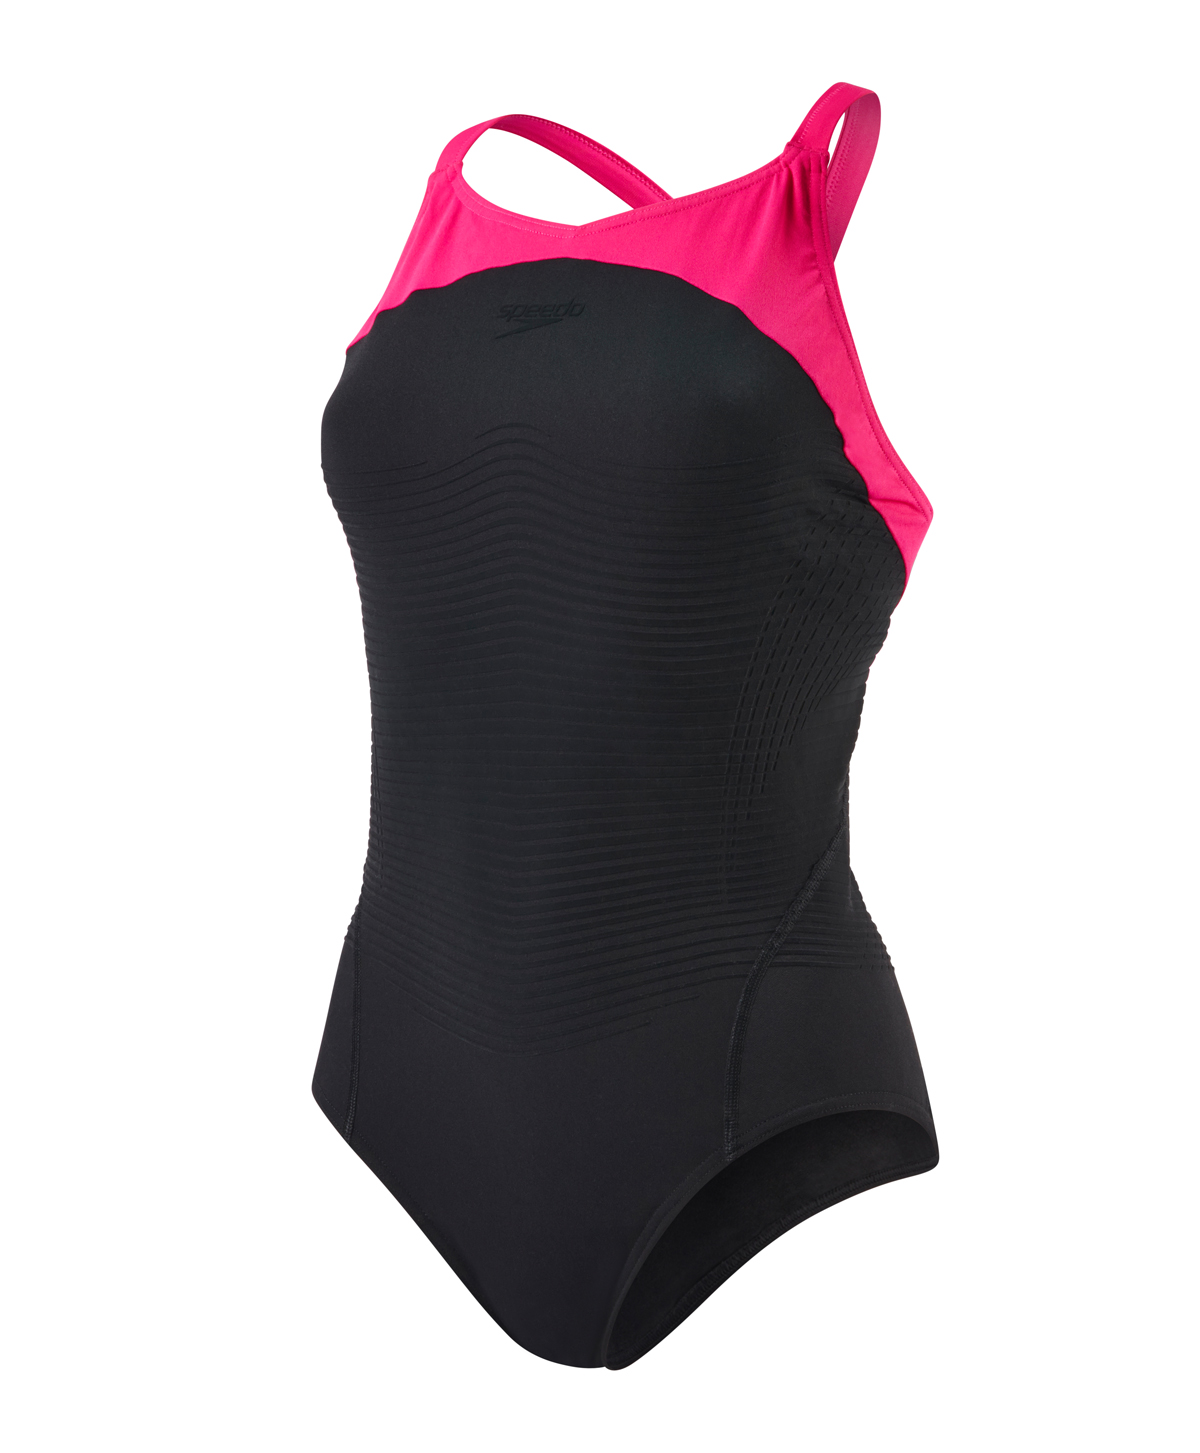 Speedo Women's Speedo Fit Power Form XBack | swim_clothes